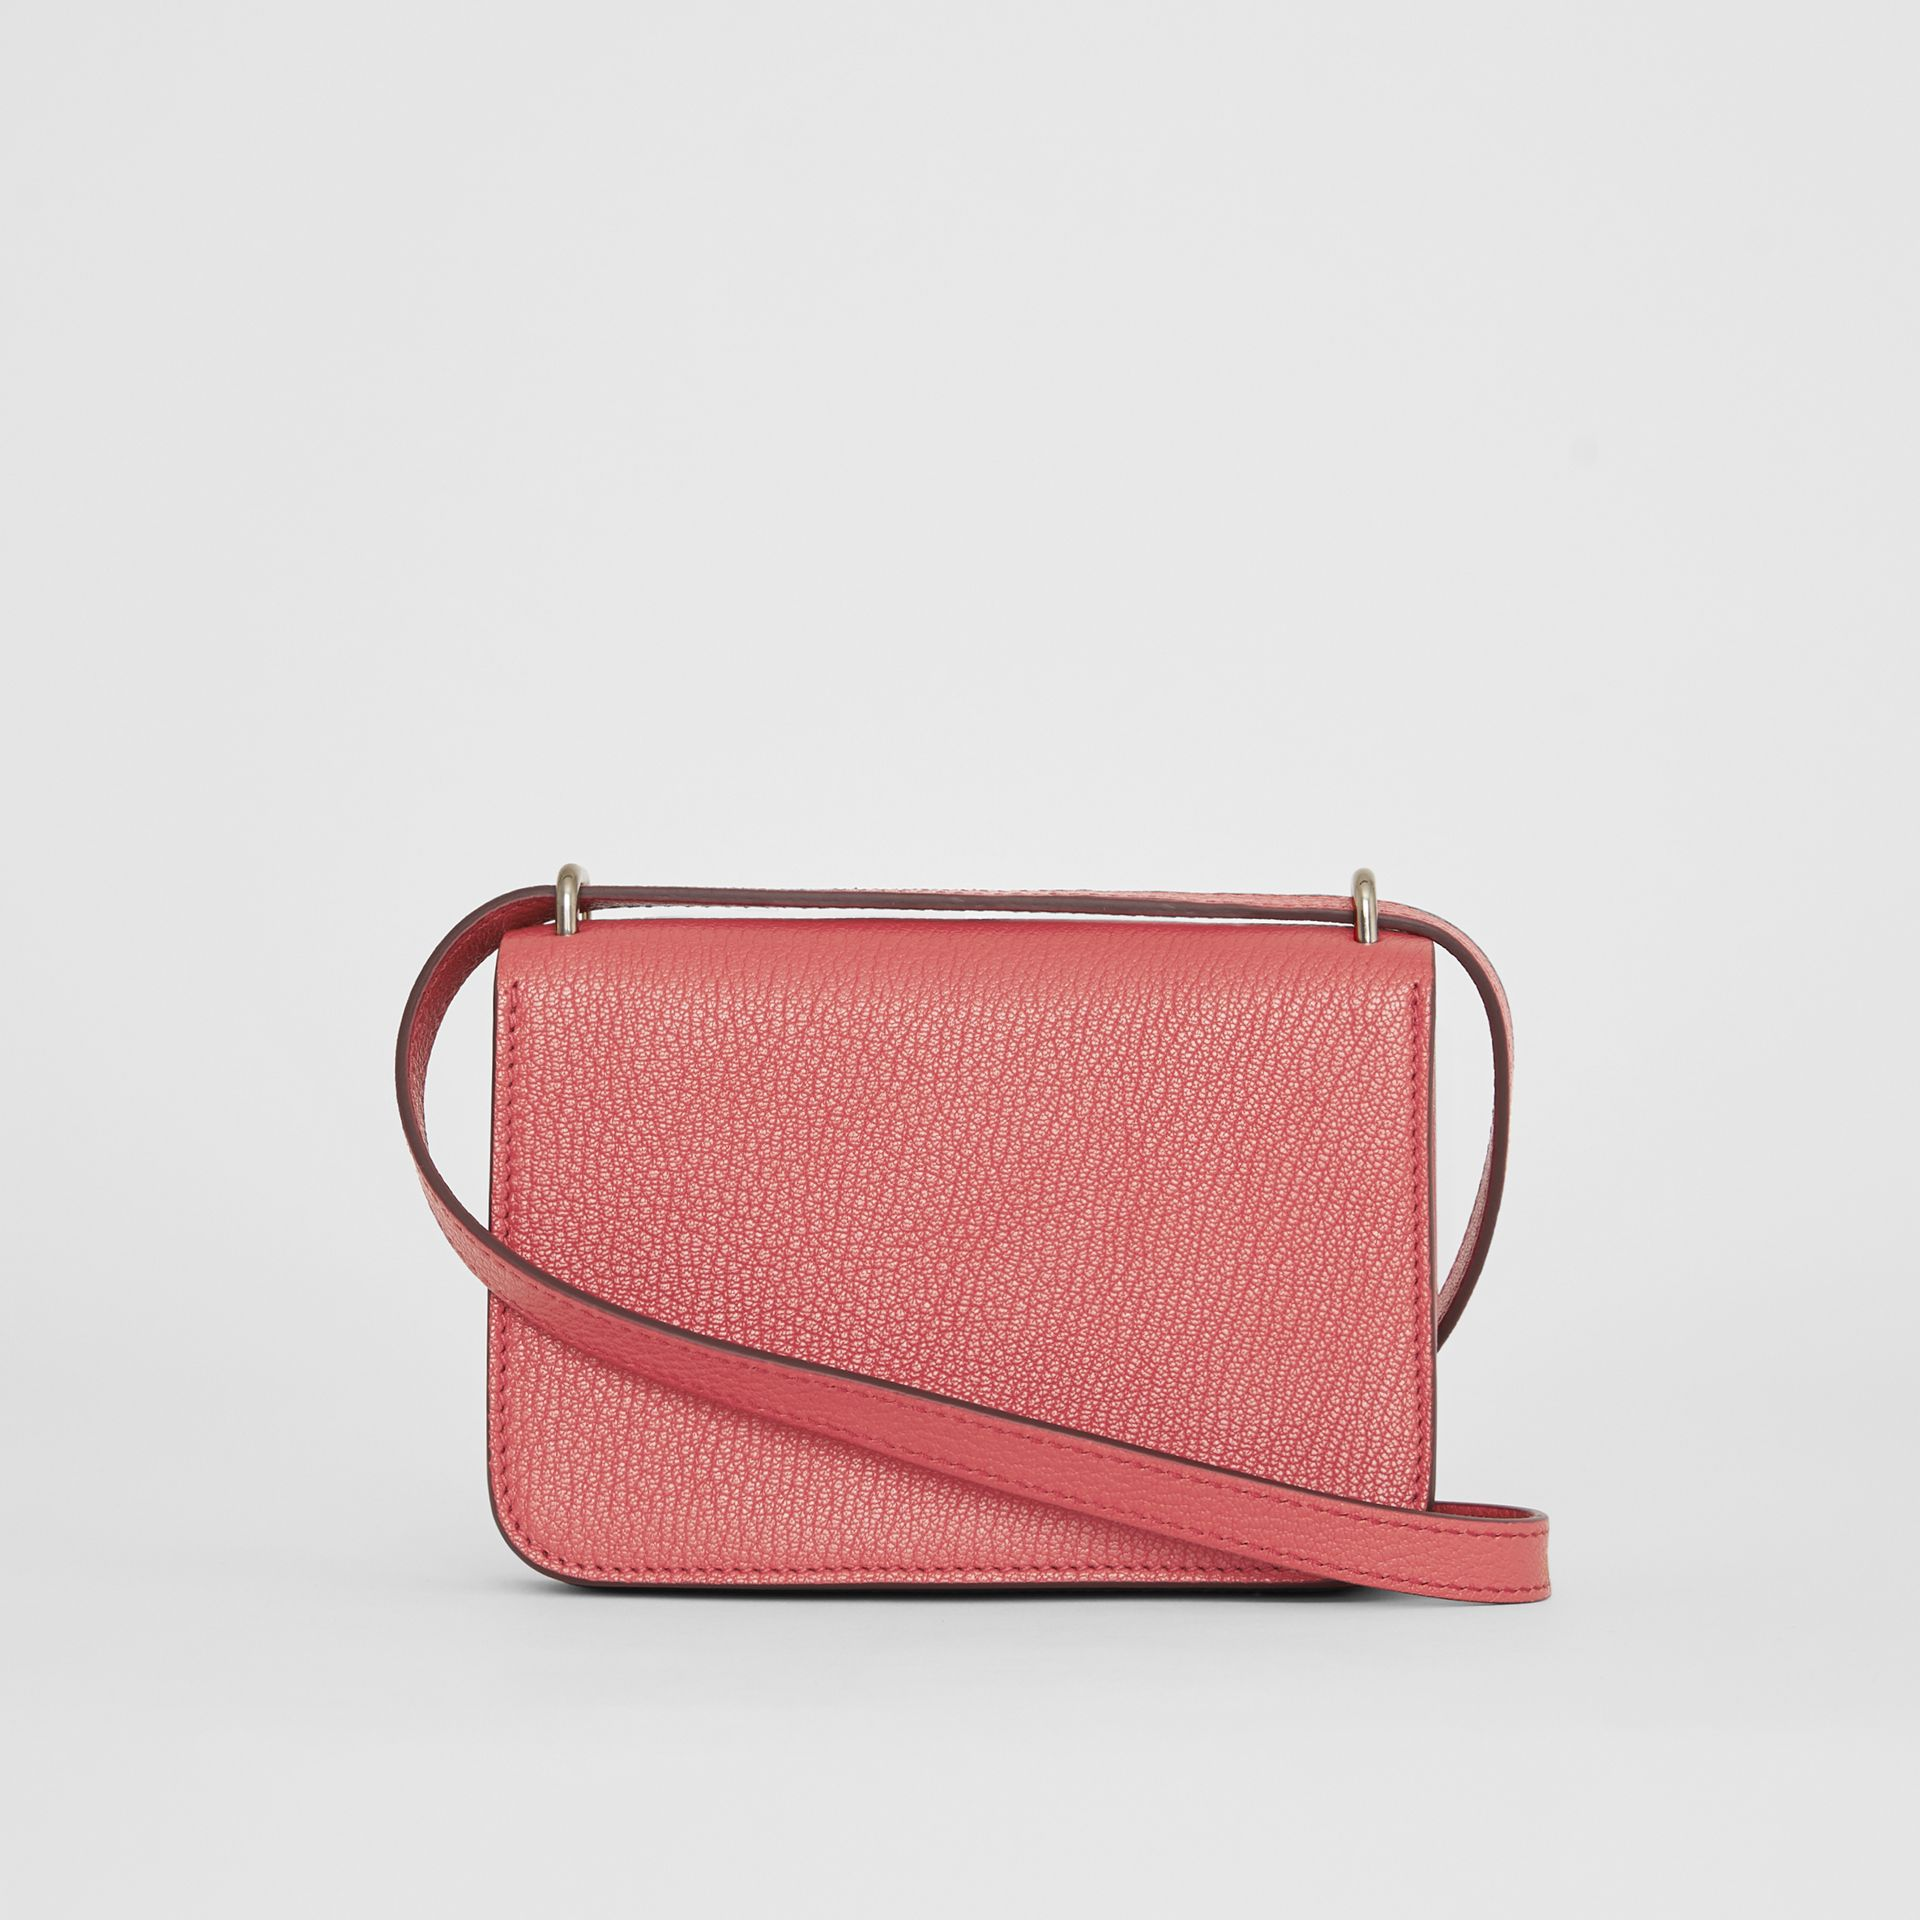 Borsa The D-ring mini in pelle (Rosa Corallo Brillante) - Donna | Burberry - immagine della galleria 7